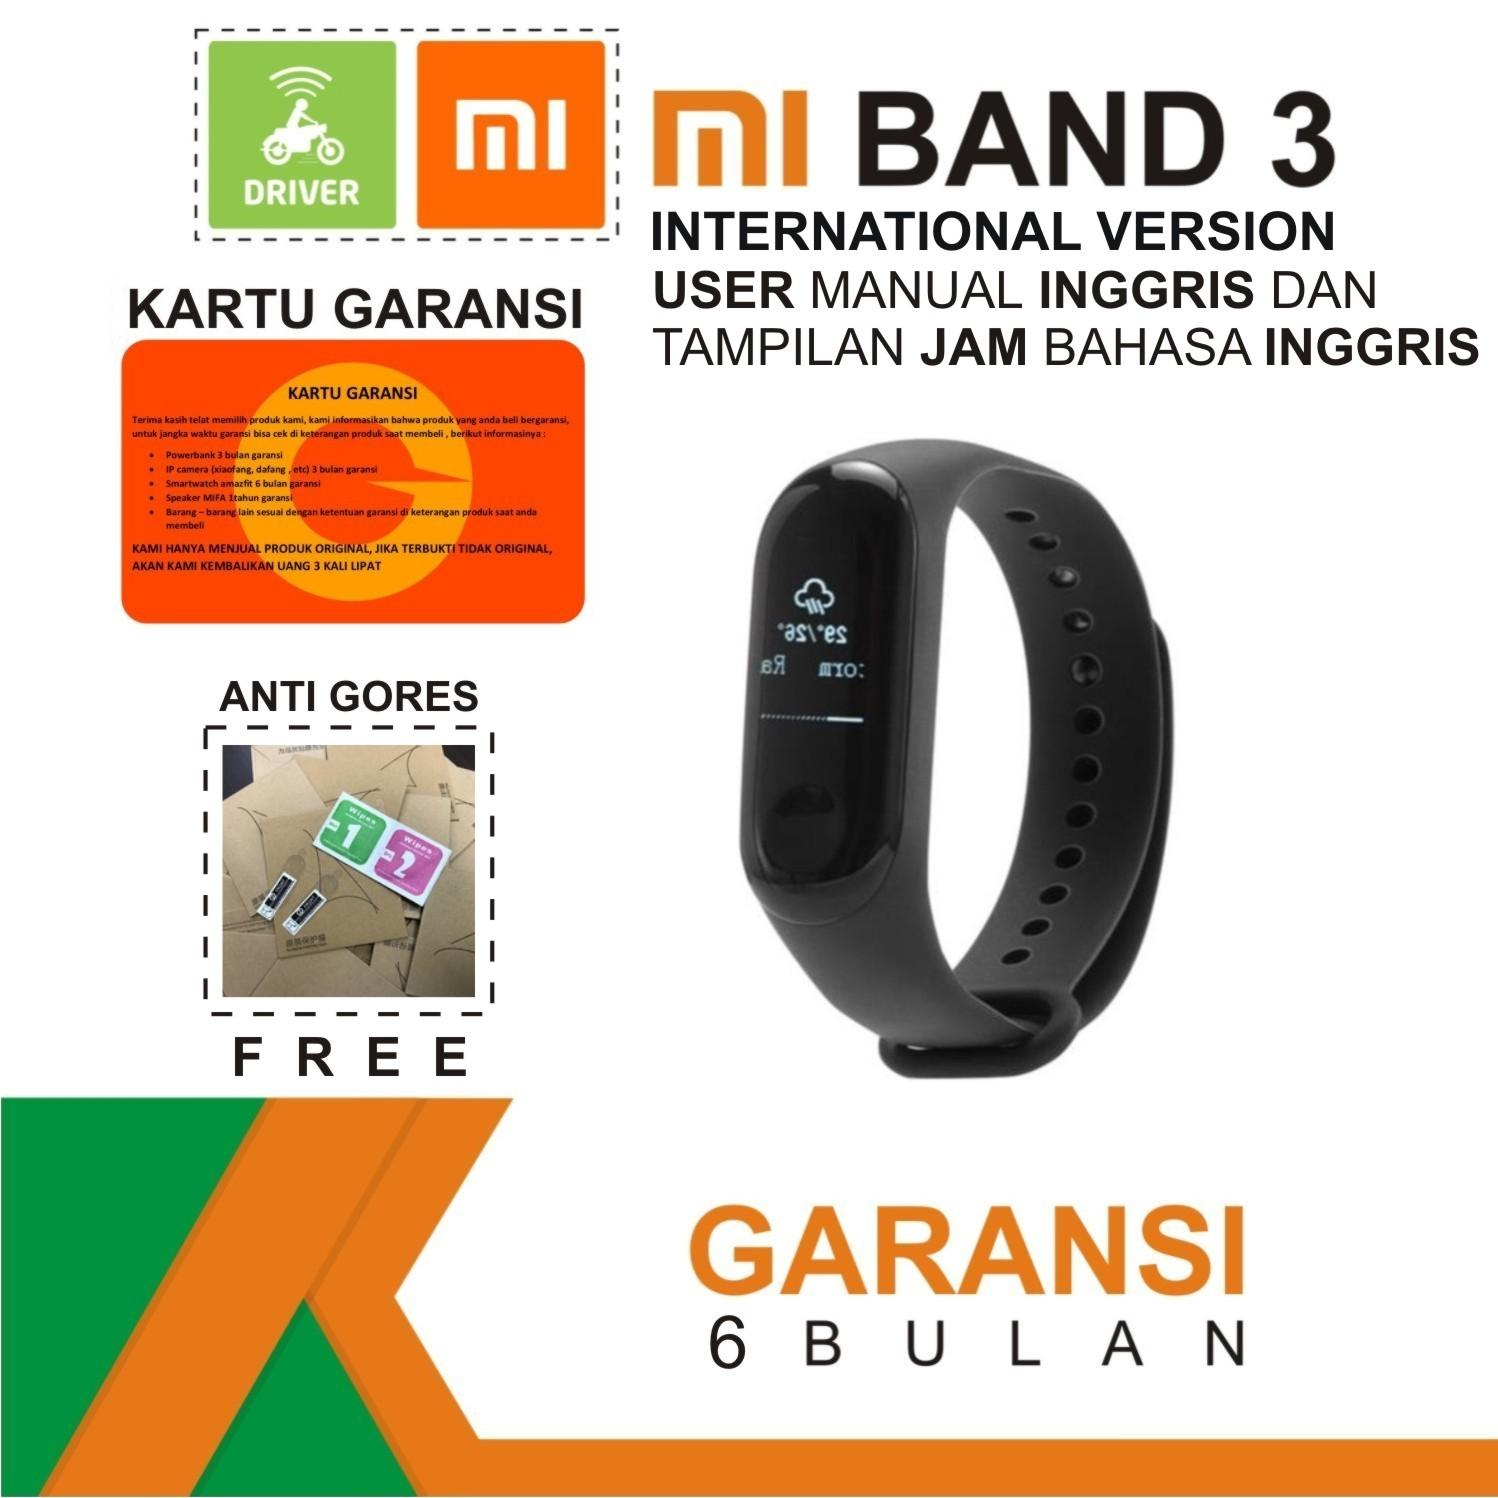 No 1 G5 Mt2502 240 X Bluetooth 4 0 Denyut Jantung Cerdas Laptop Hp G6 03pa Xiaomi Mi Band 3 Smart Oled Display Original Alt Miband 2 Hitam